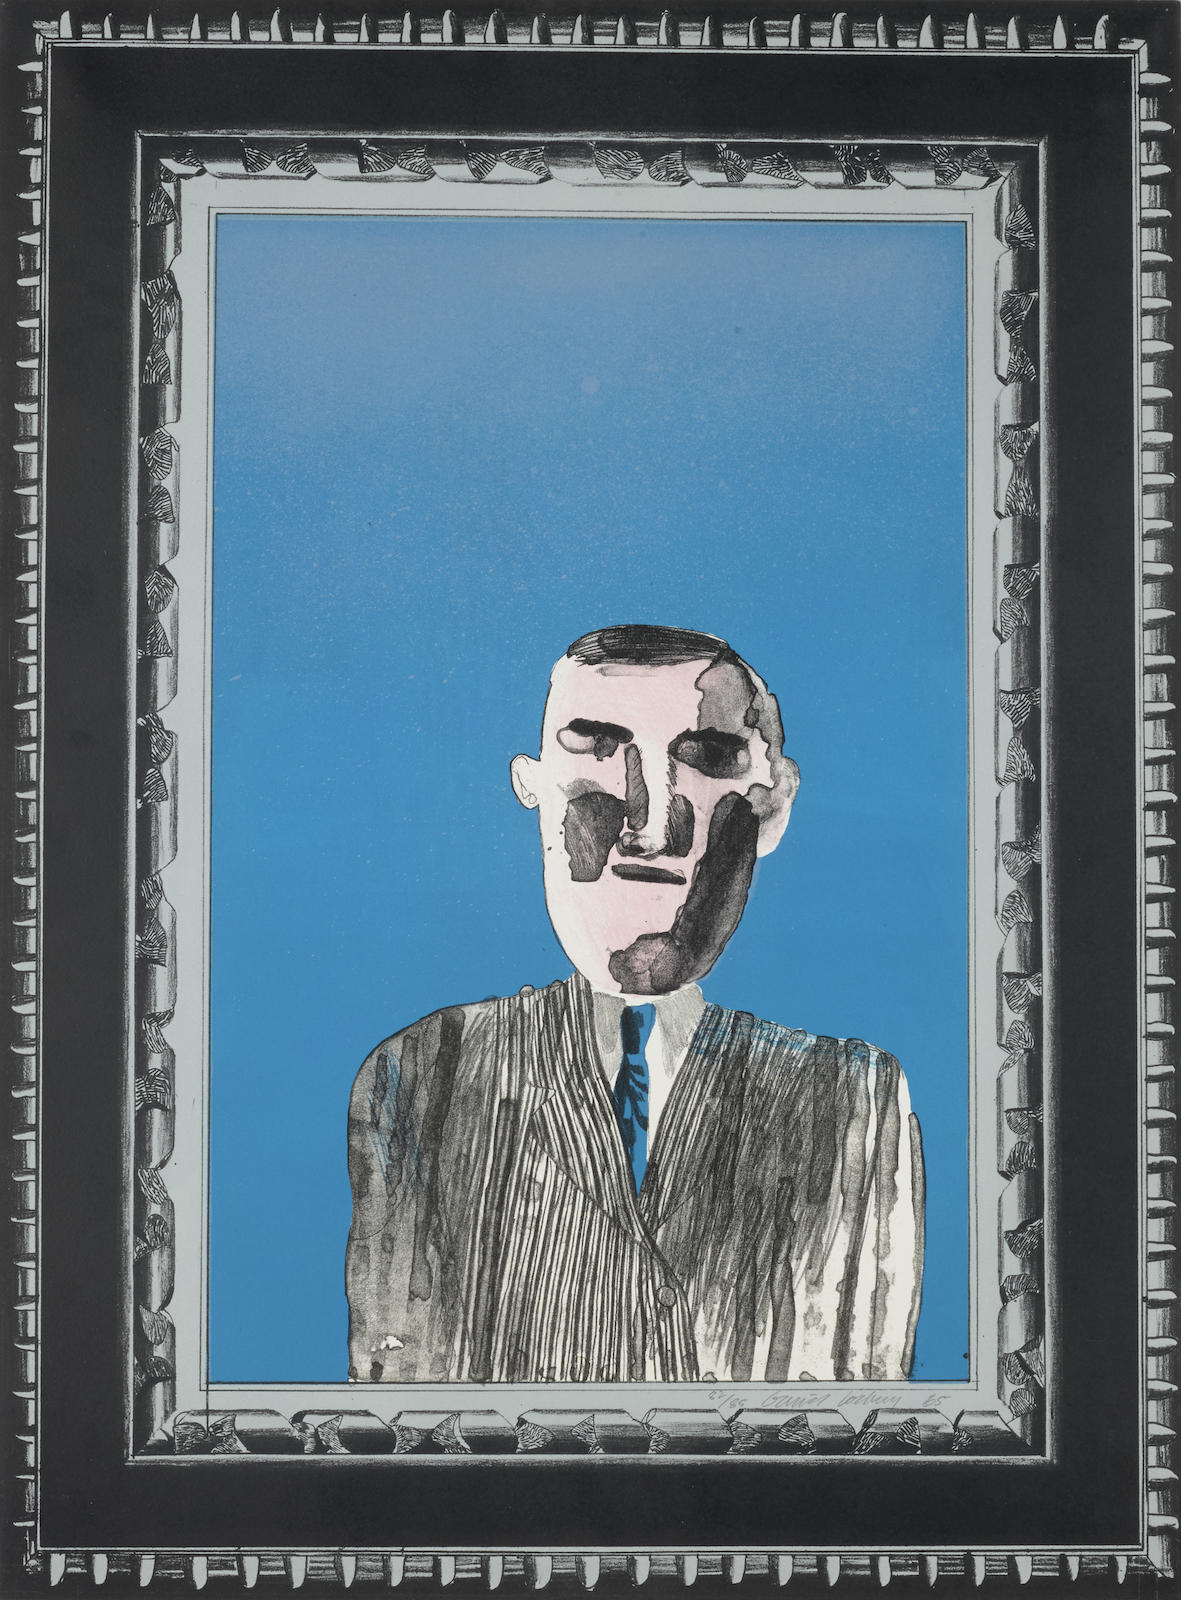 David Hockney-Picture of a portrait in a silver frame, from A Hollywood Collection (S.A.C. 43)-1965